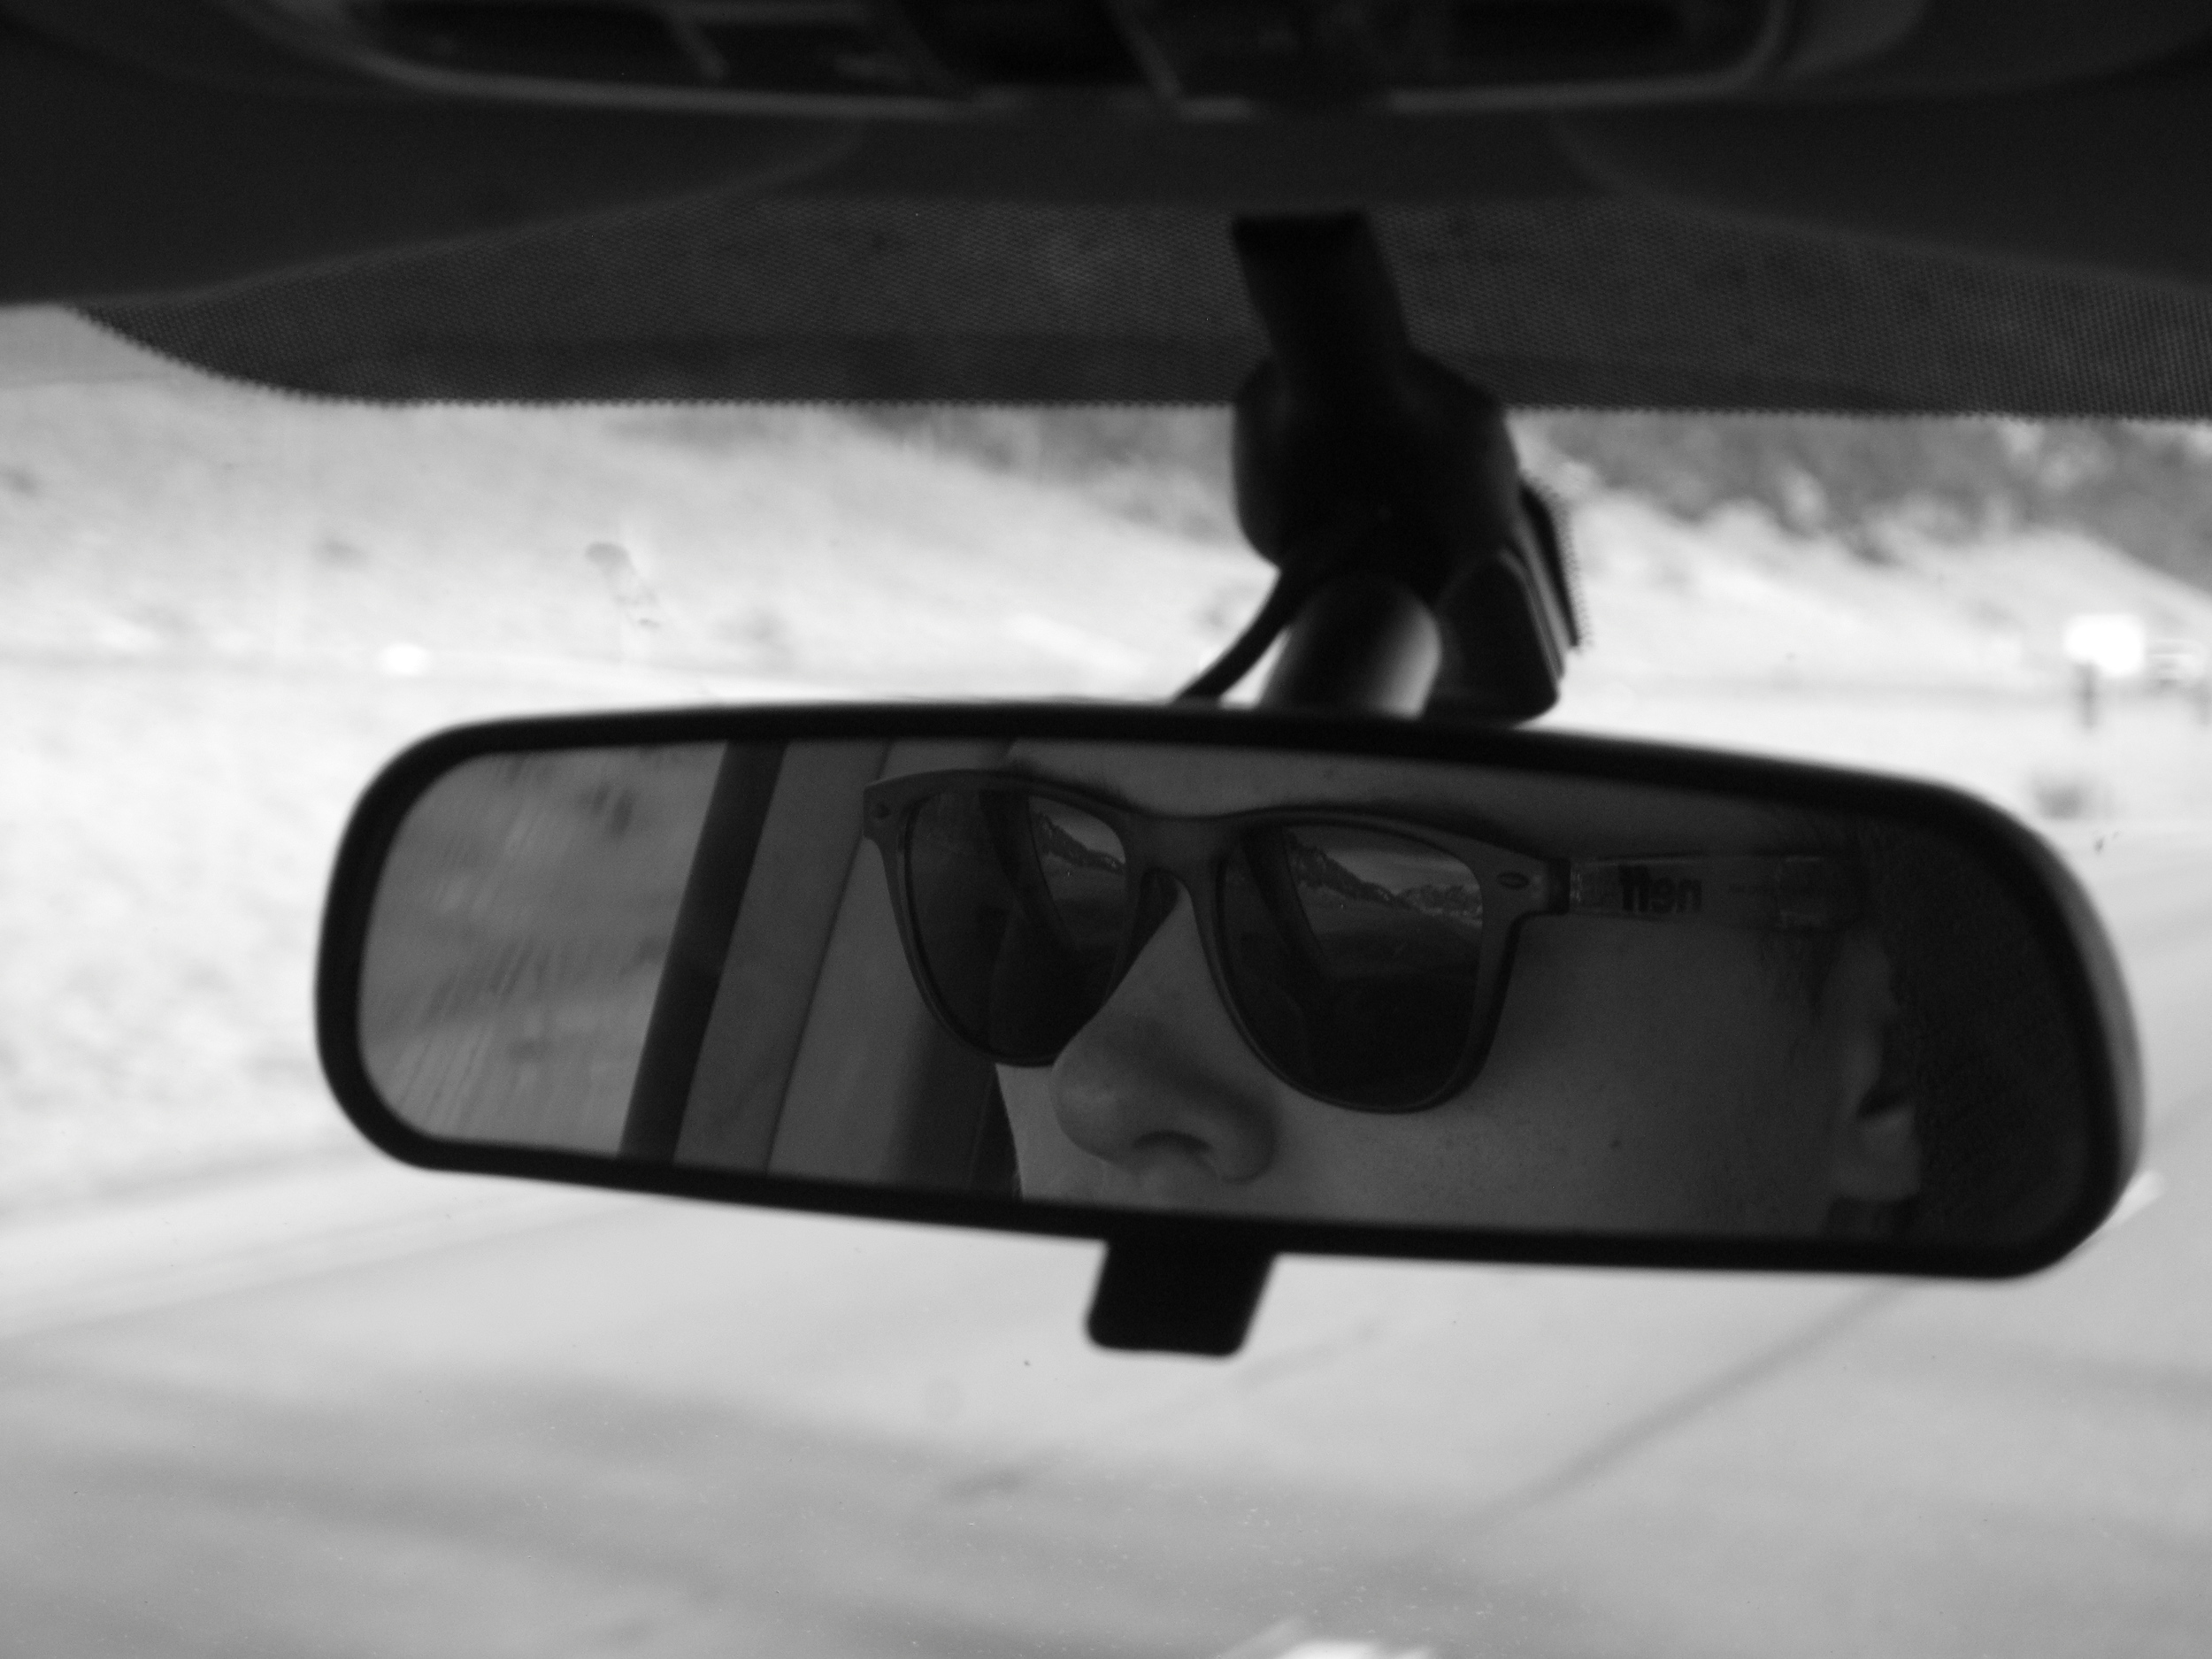 Sunglasses and road trips - reflections in rear view mirror.